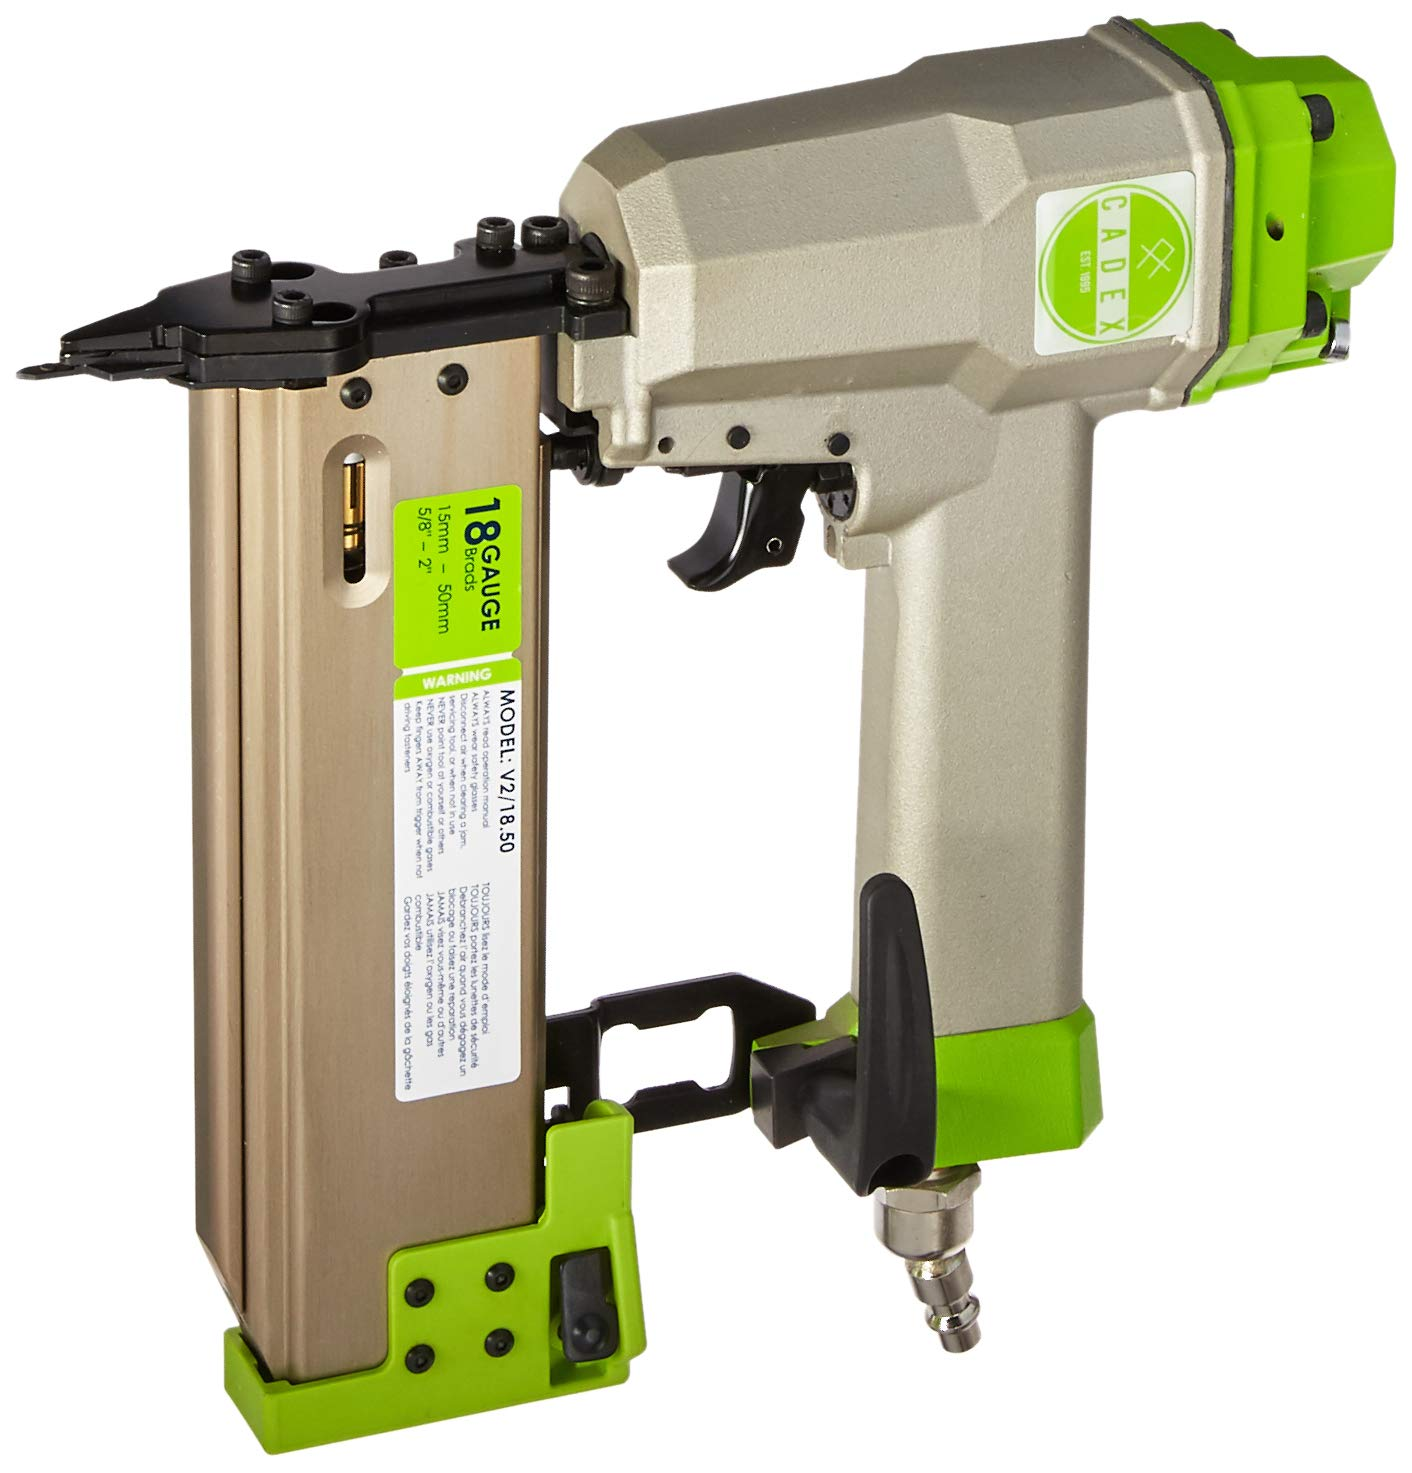 Cadex V2 18.50 18 Gauge Brad Nailer, 5 8 – 2